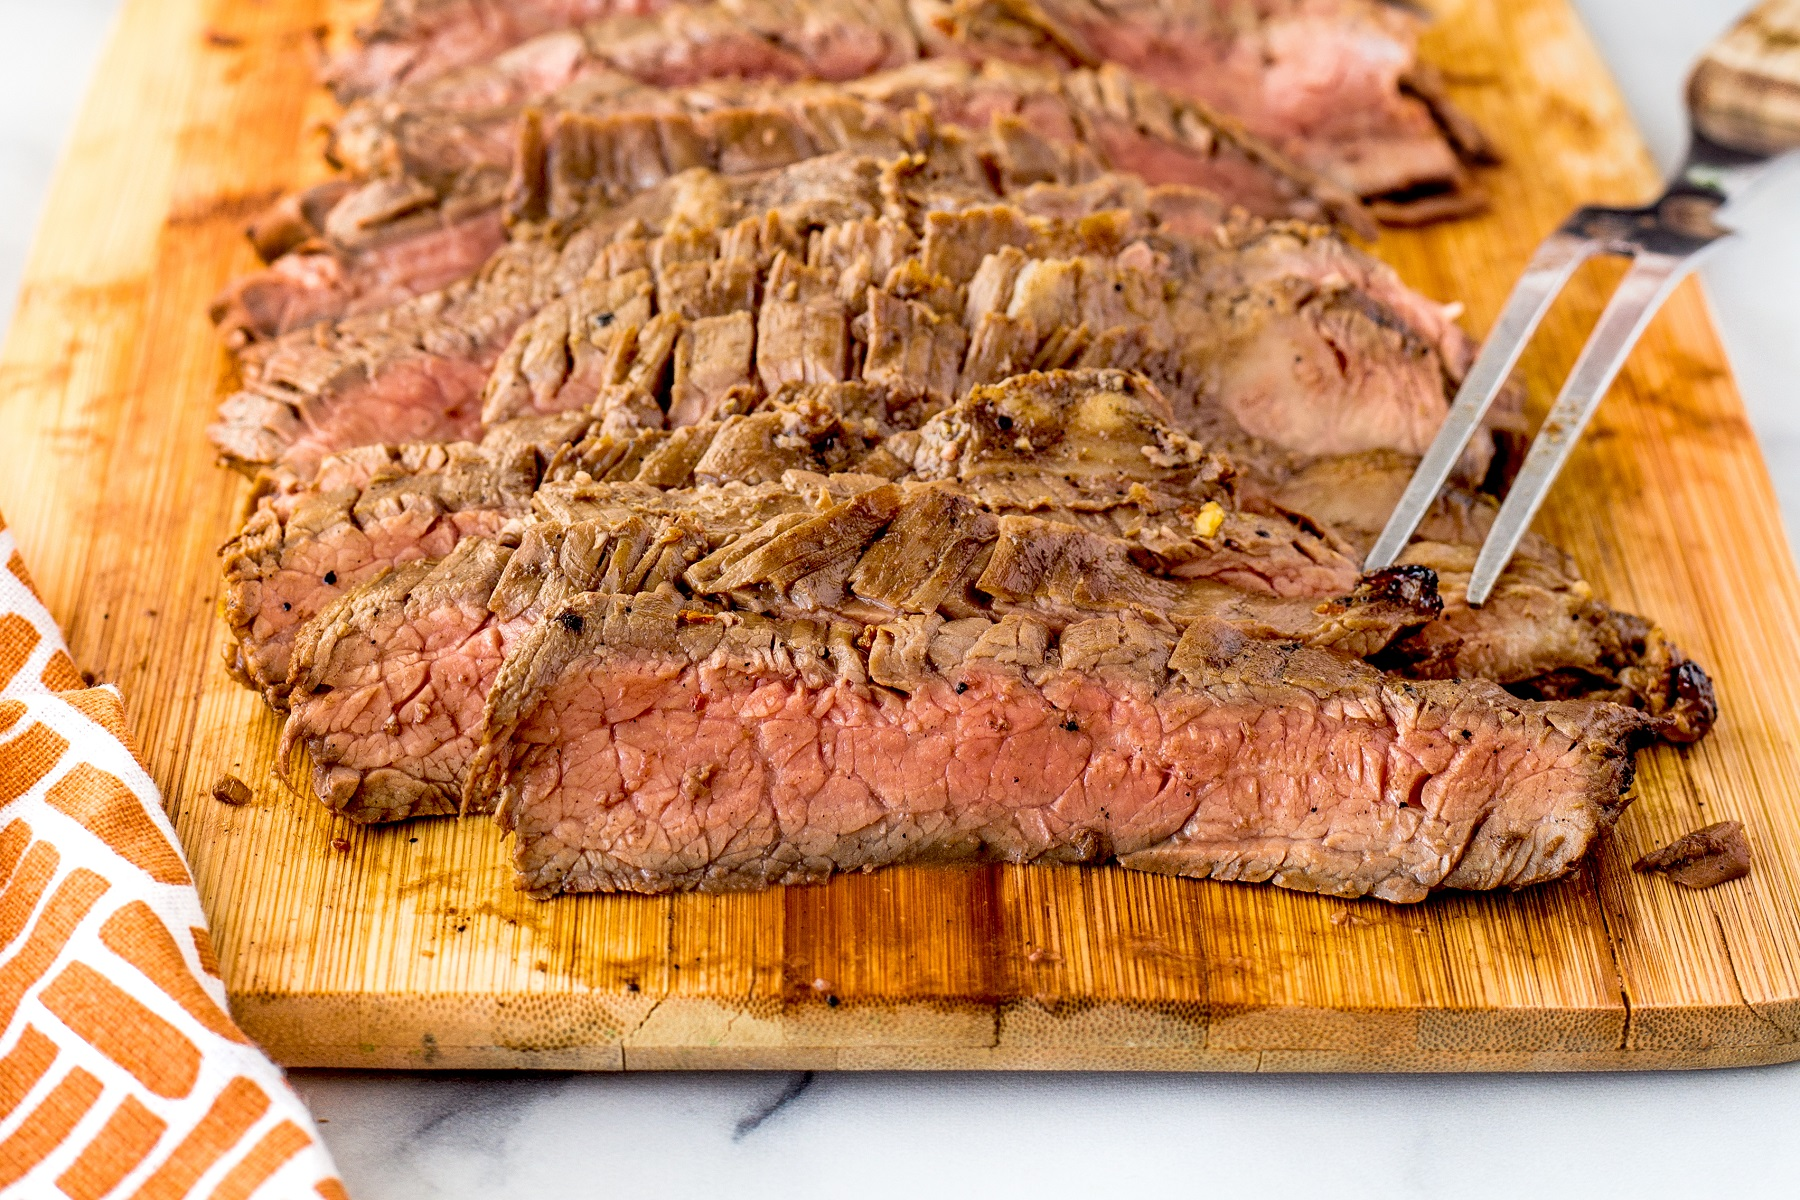 Thinly sliced grilled flank steak on a wooden cutting board